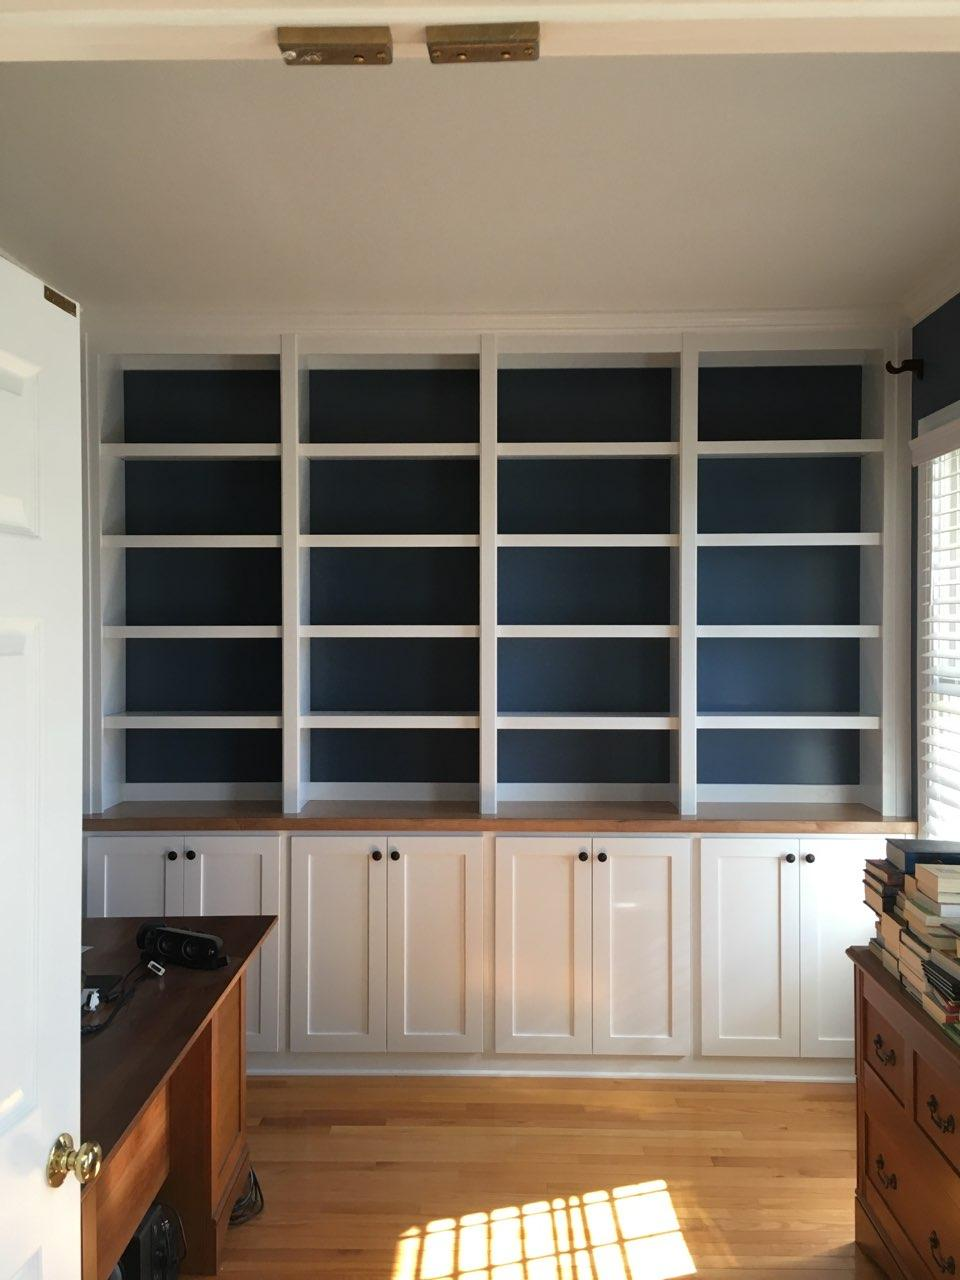 Built-In with Accent Backer, Shaker Doors, Stain Countertop, and Crown